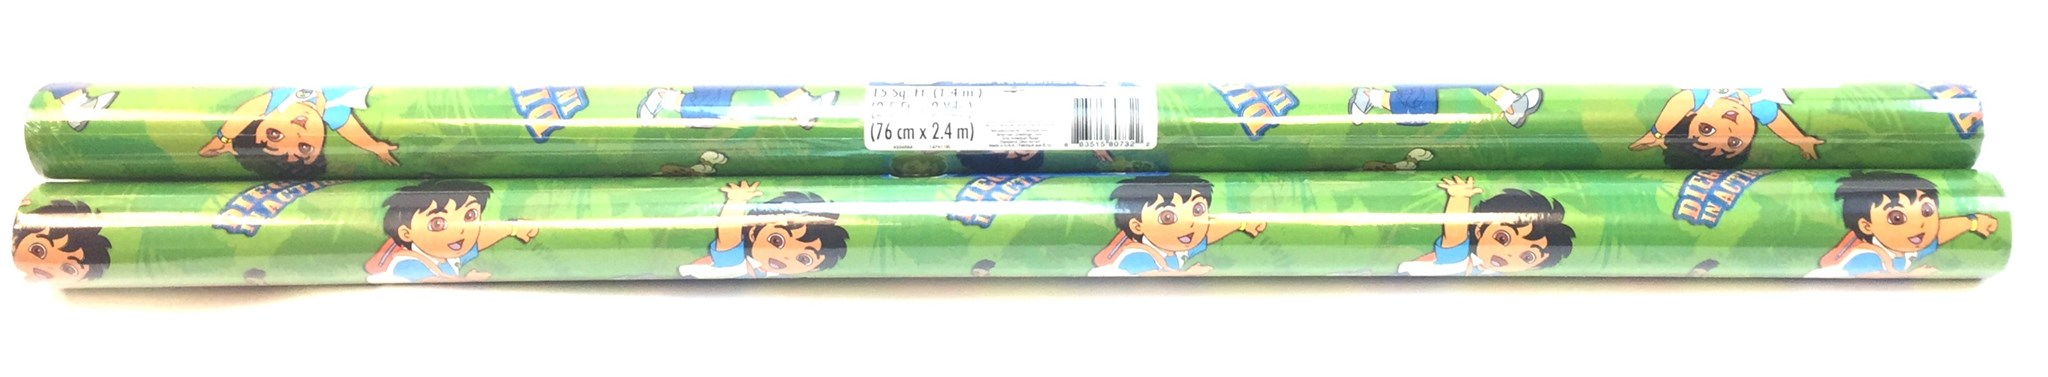 Diego In Action 15 Ft Gift Wrap